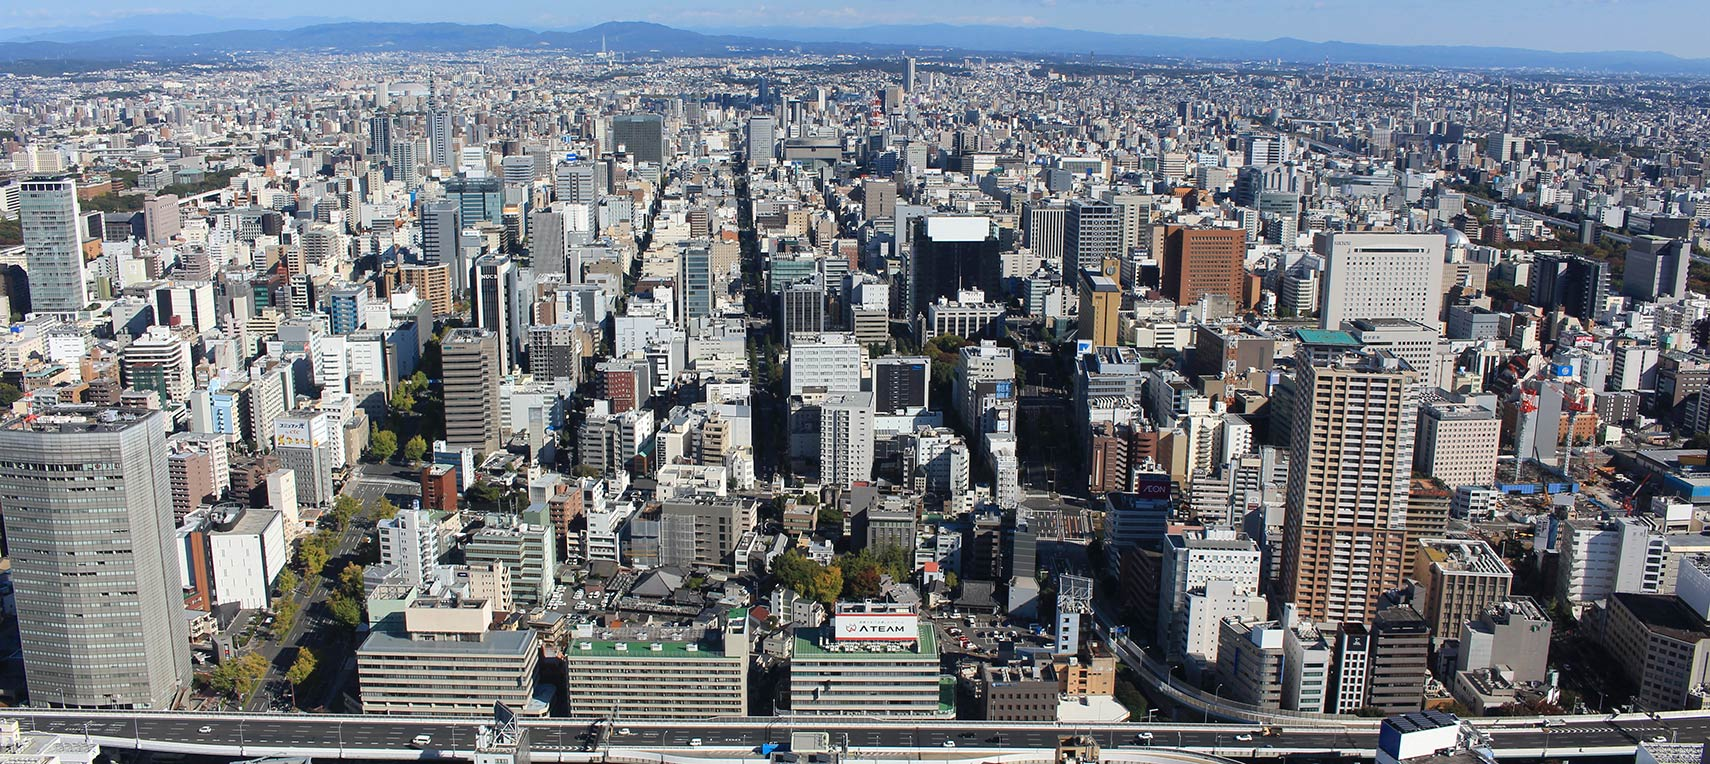 Google Map of the City of Nagoya, Japan - Nations Online Project